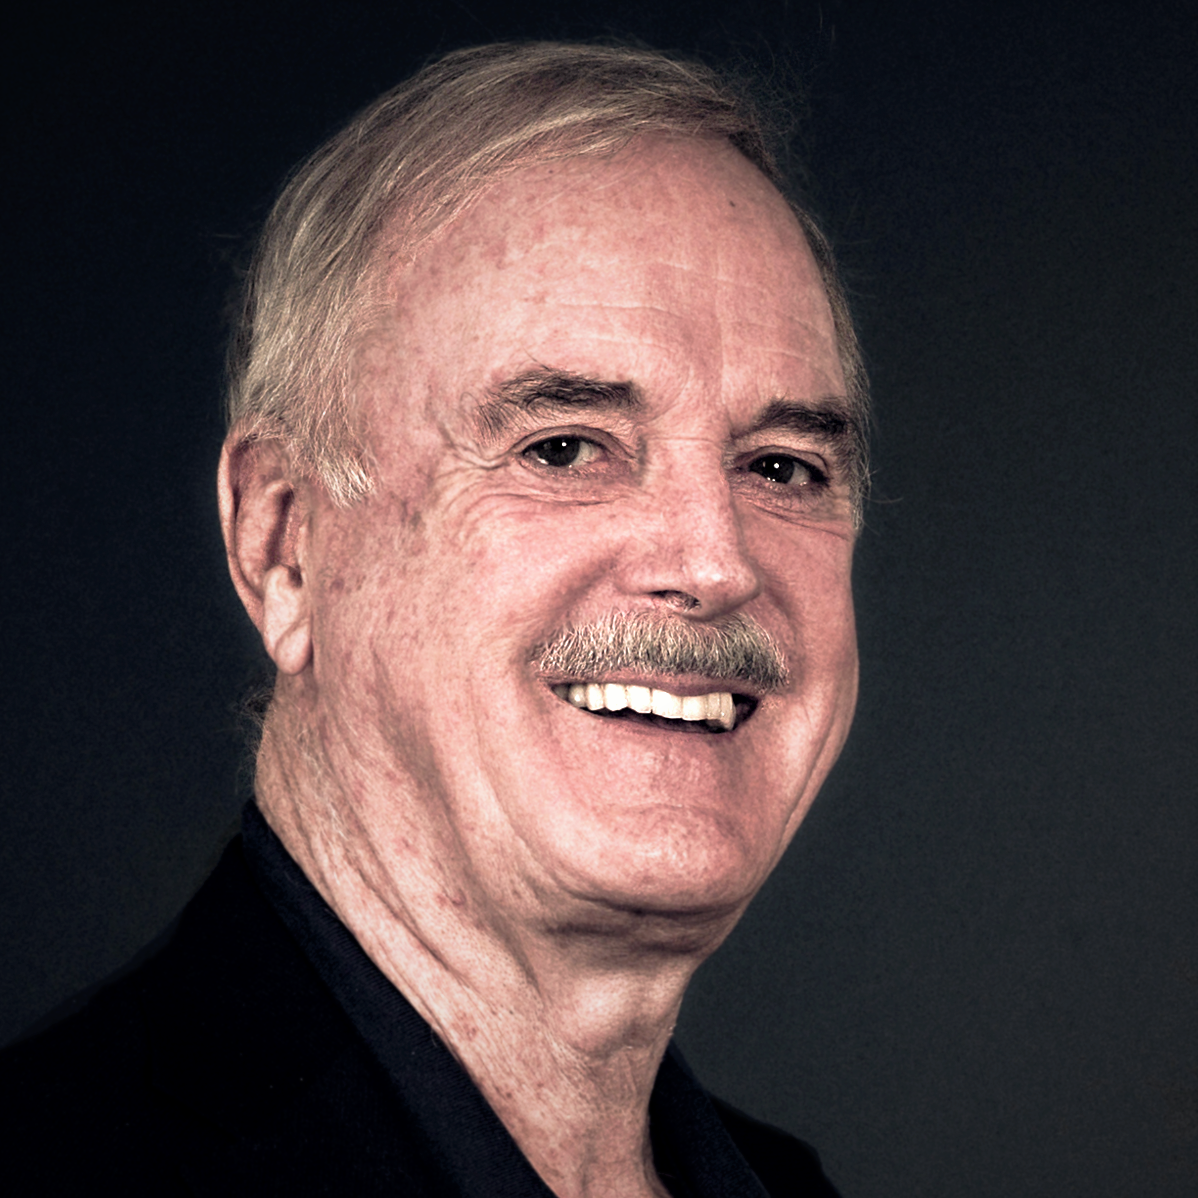 John Cleese has spent more than 50 years studying creativity and its benefits for your business.